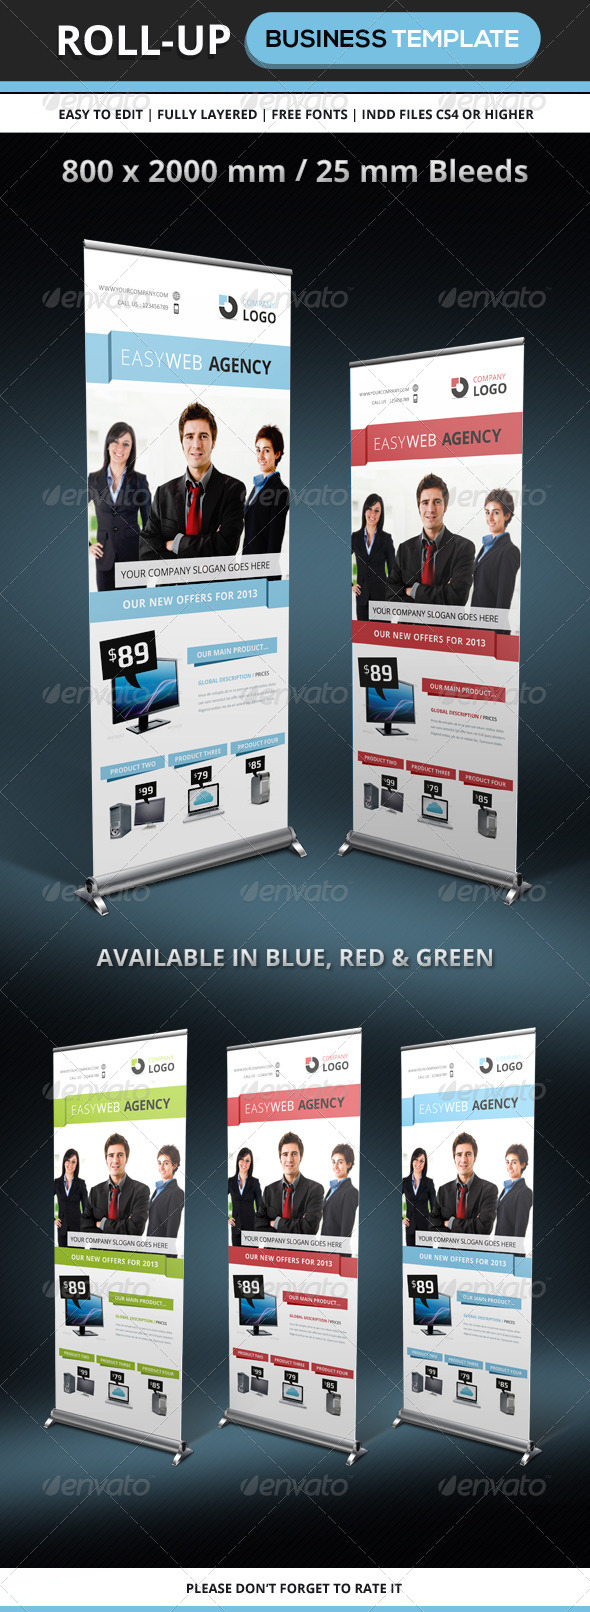 GraphicRiver Corporate & Business Roll-up Template 5522204